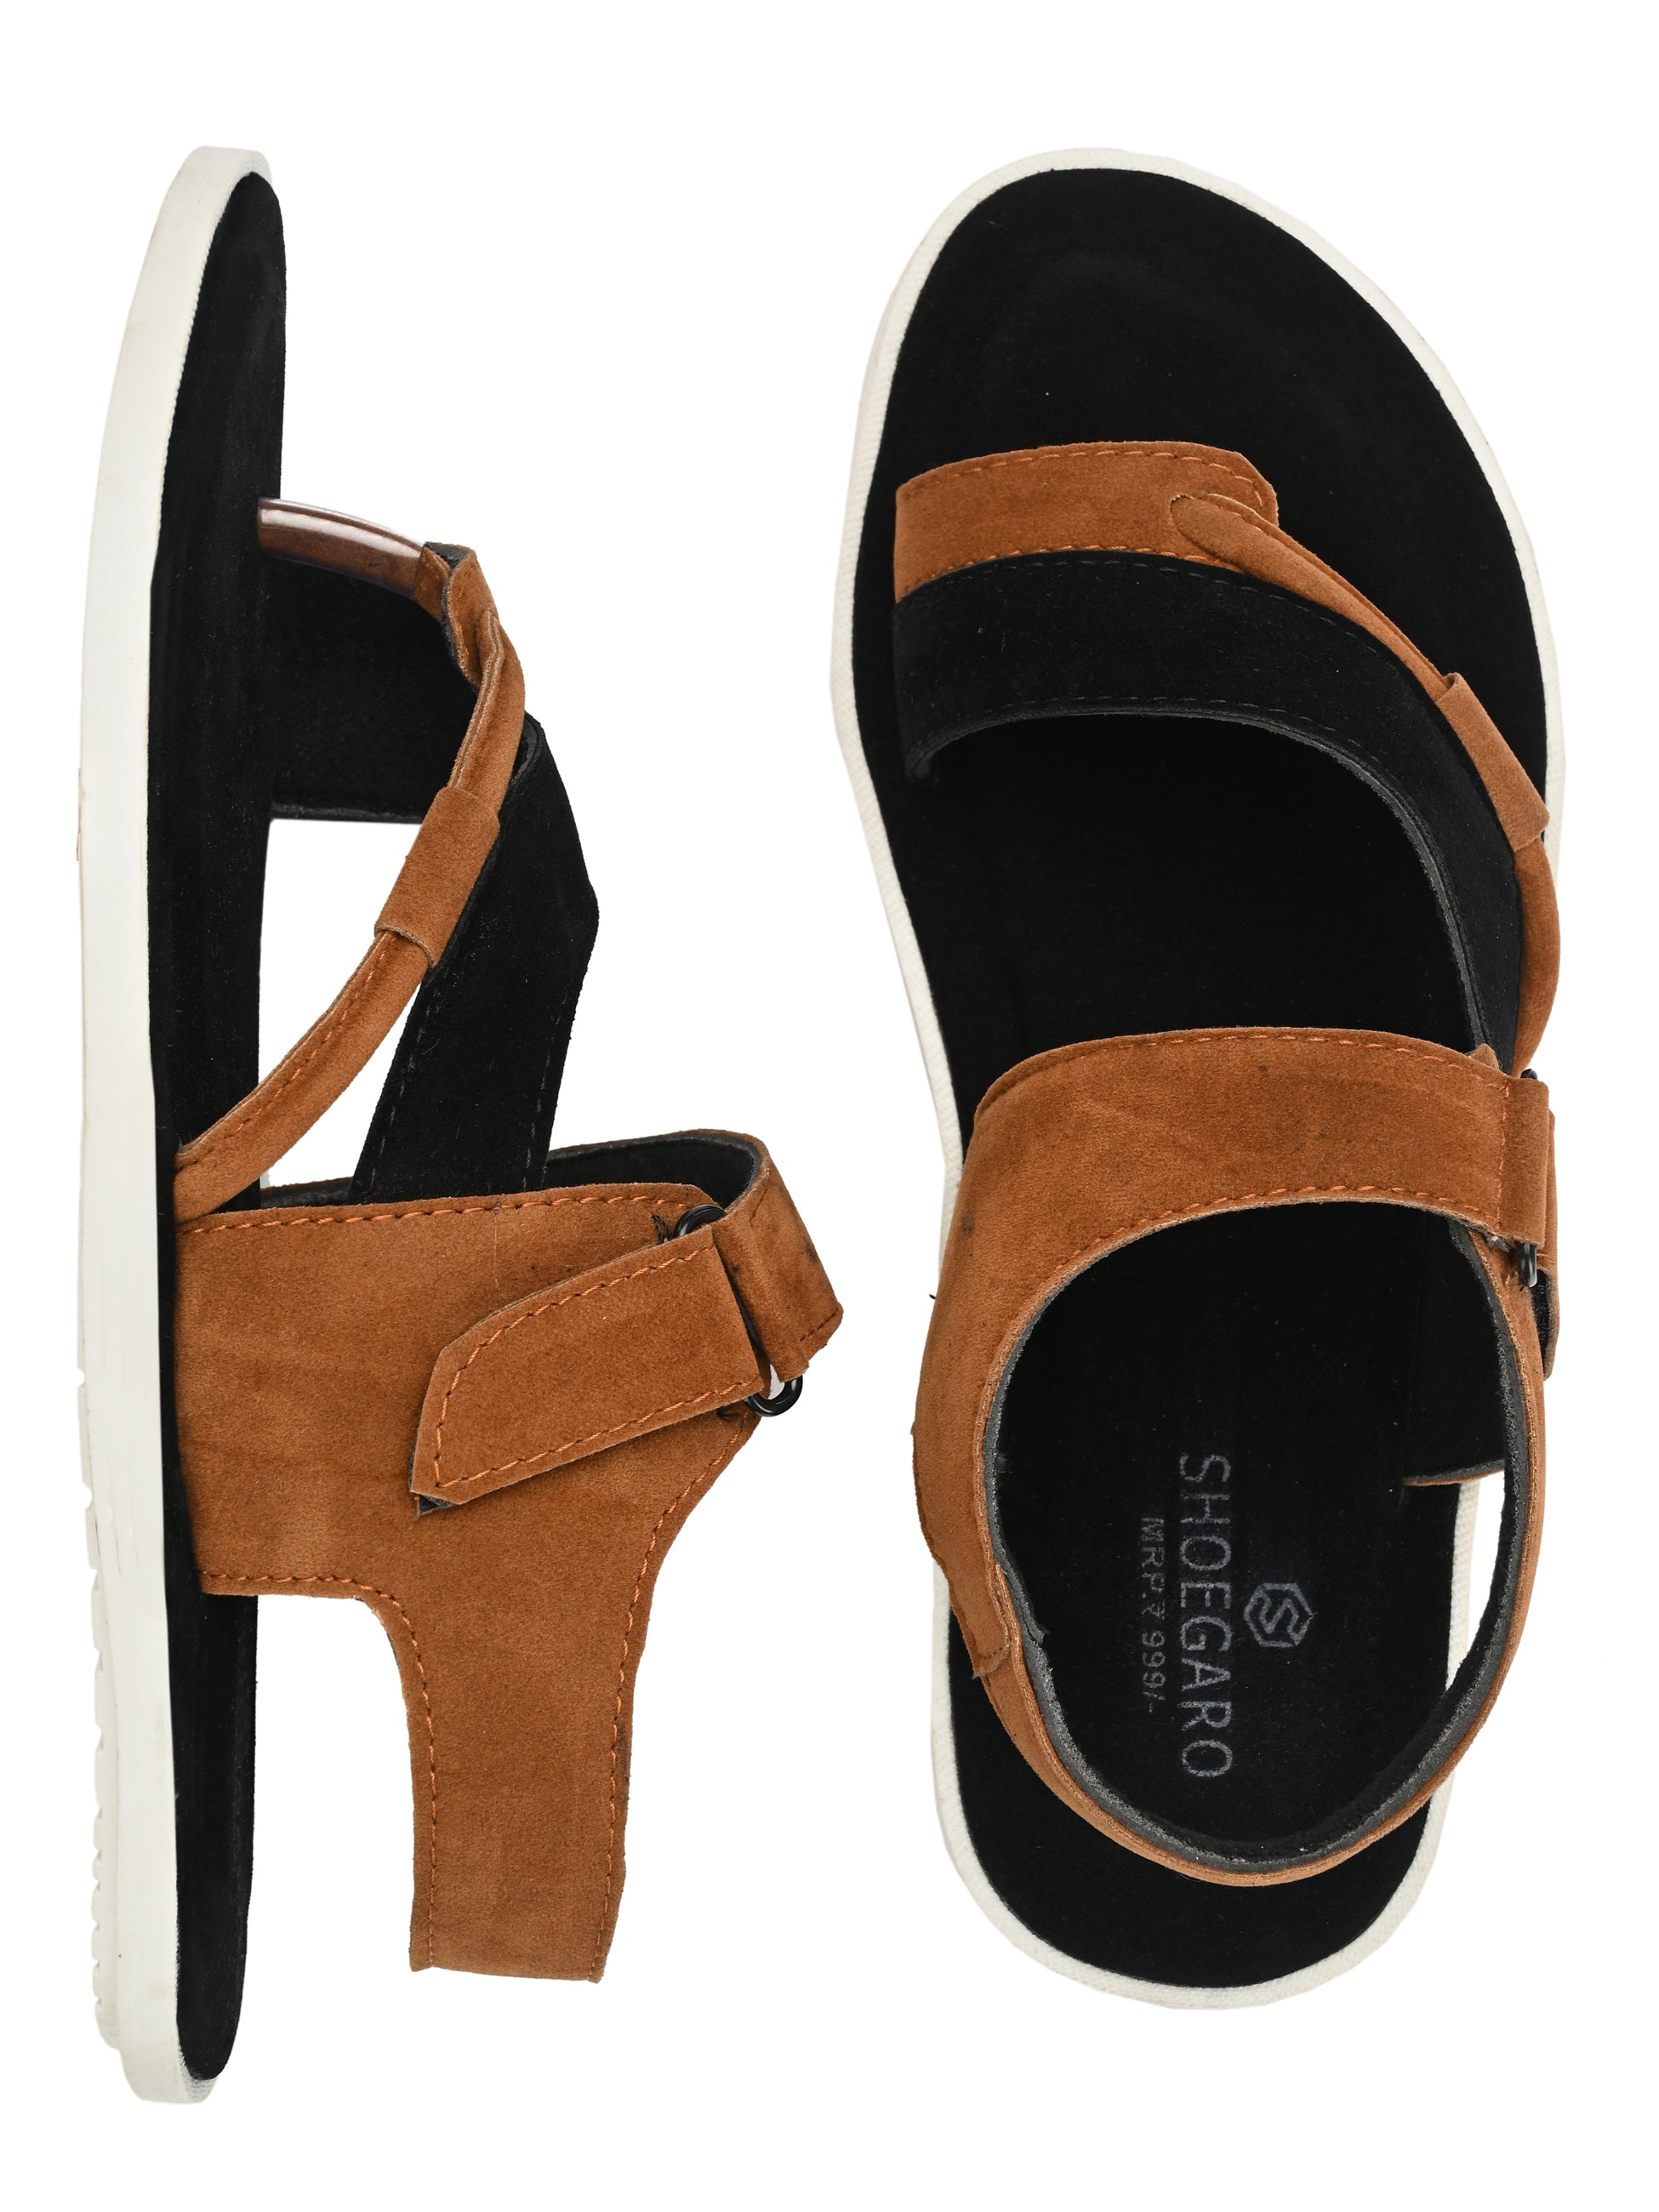 Lashy Thong Strip Sandal - shoegaro